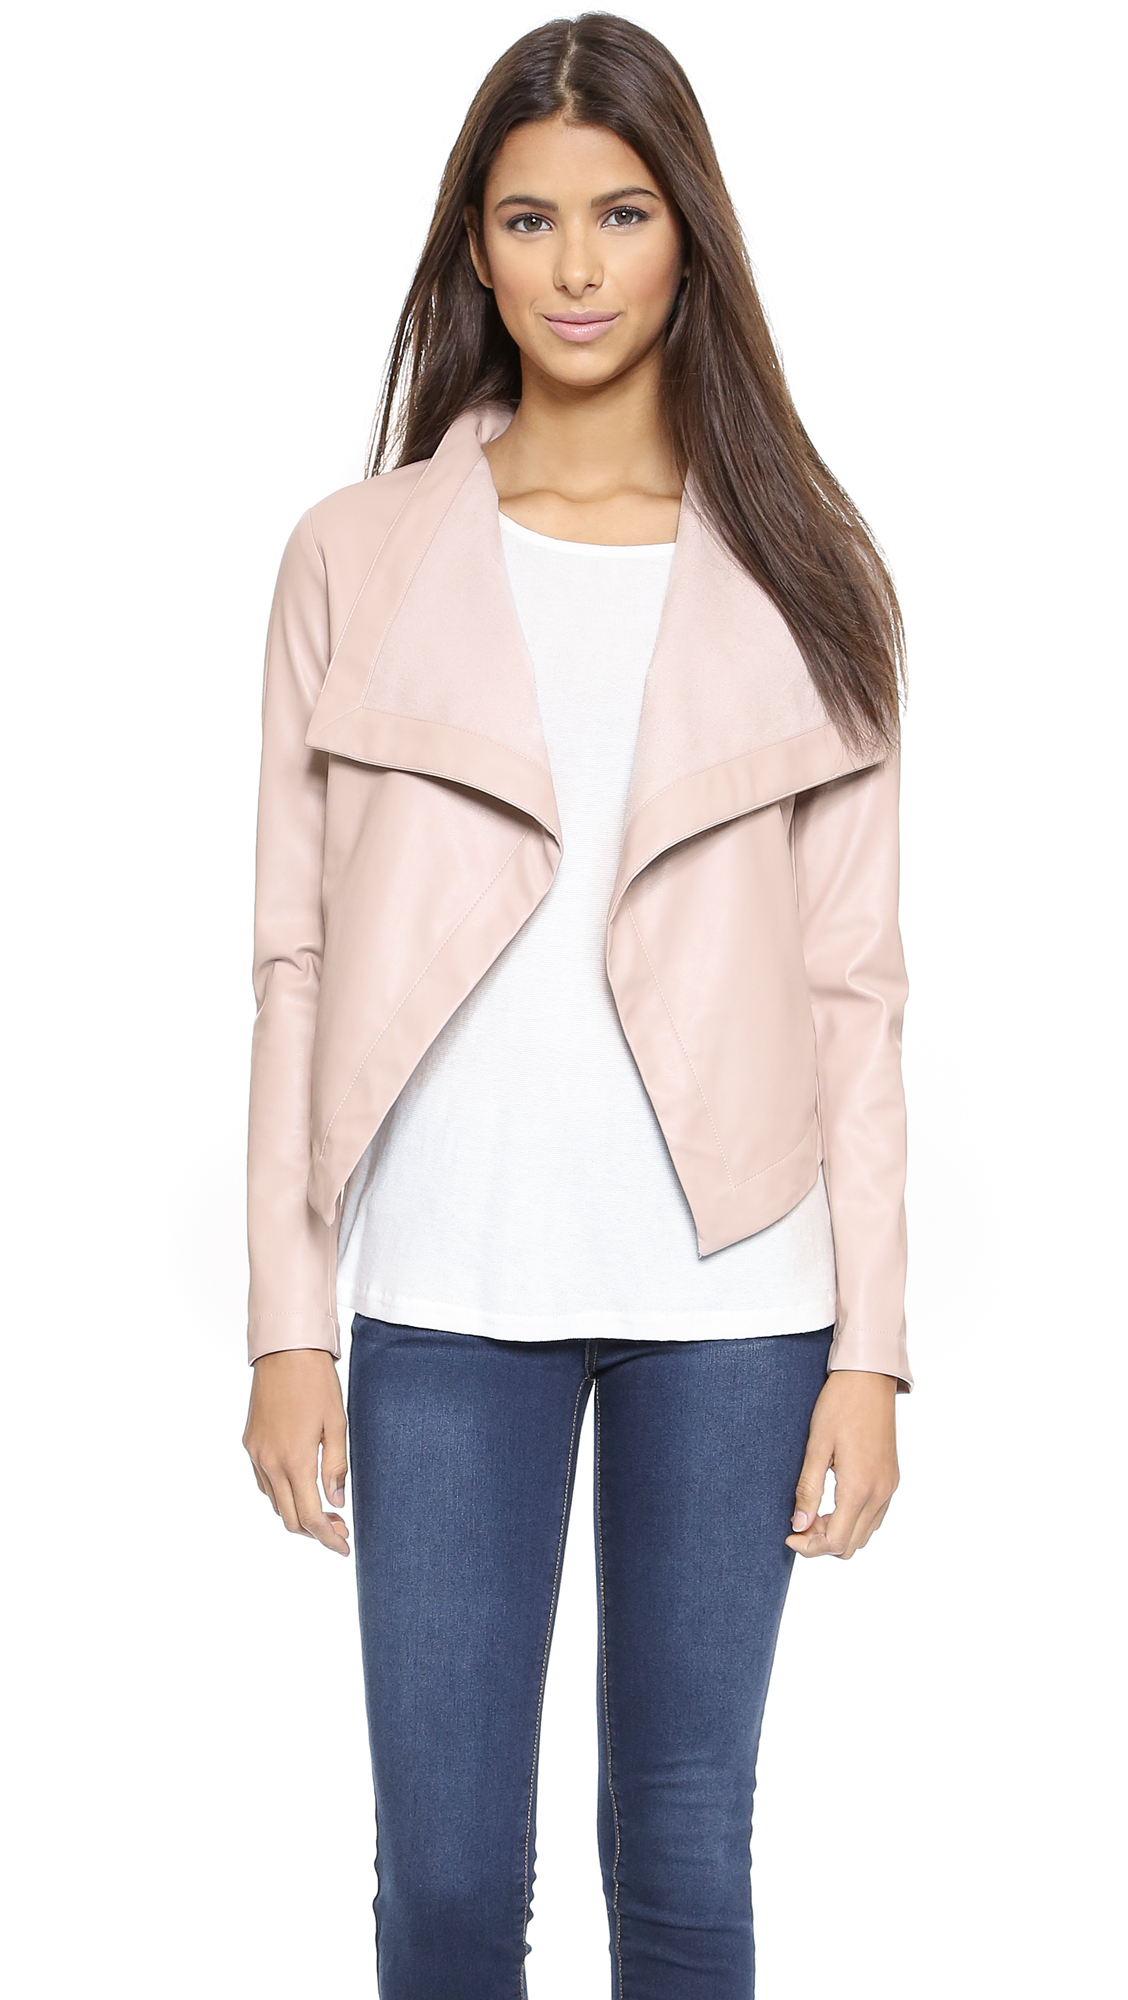 nordstrom jacket vegan image faux drapes product shop rack leather of drape draped blanknyc